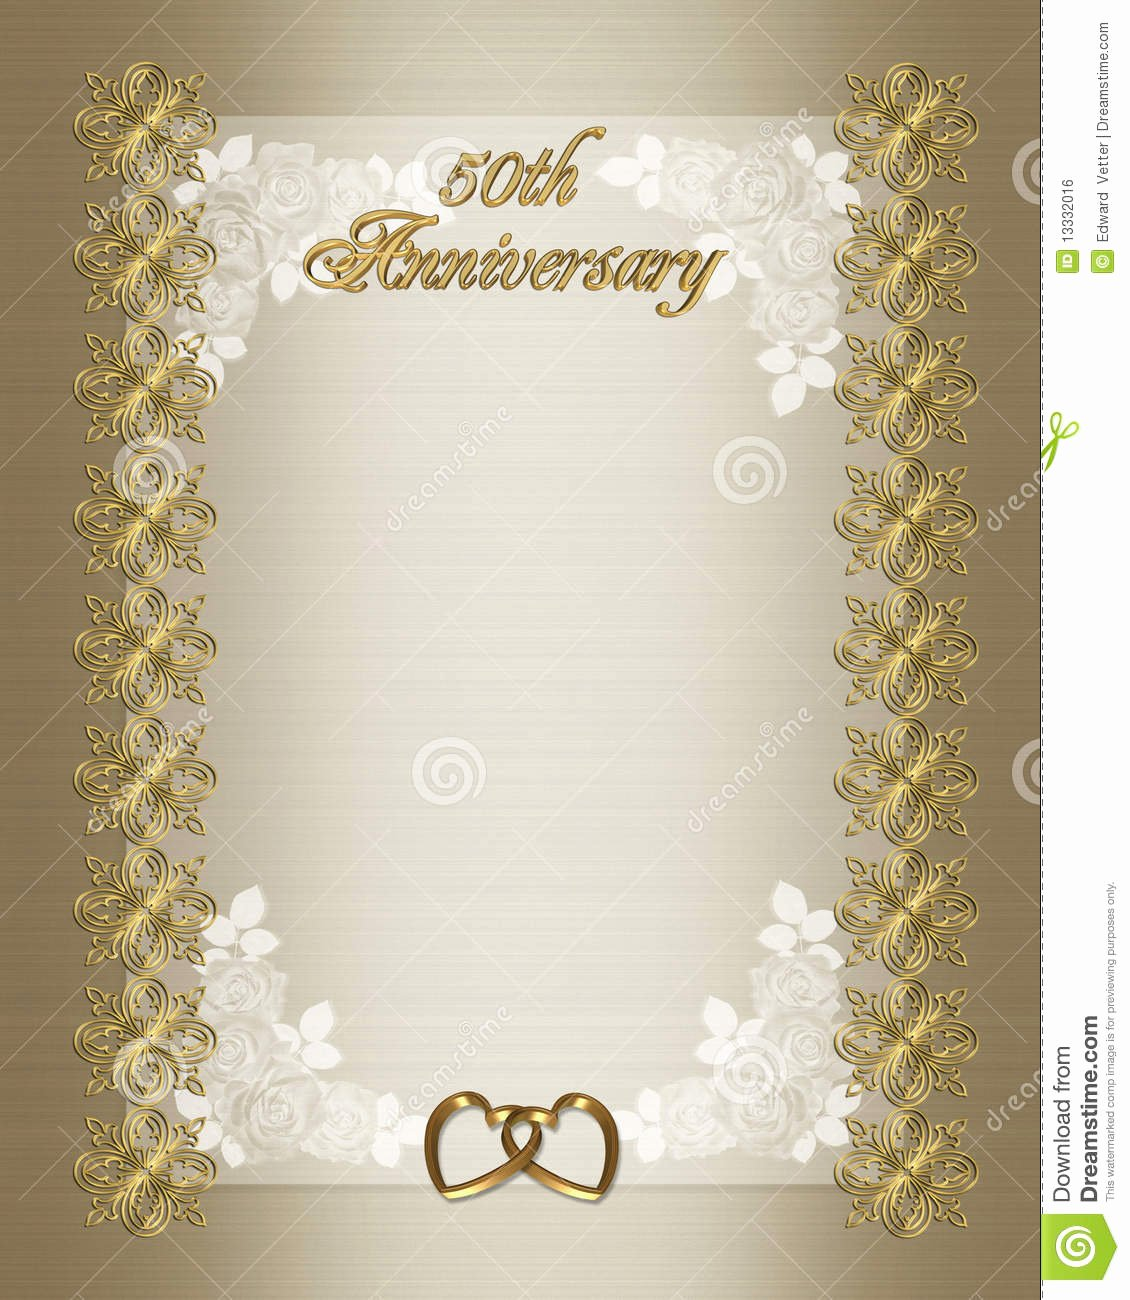 Free 50th Anniversary Invitation Templates Lovely 50th Wedding Anniversary Invitation Template Stock